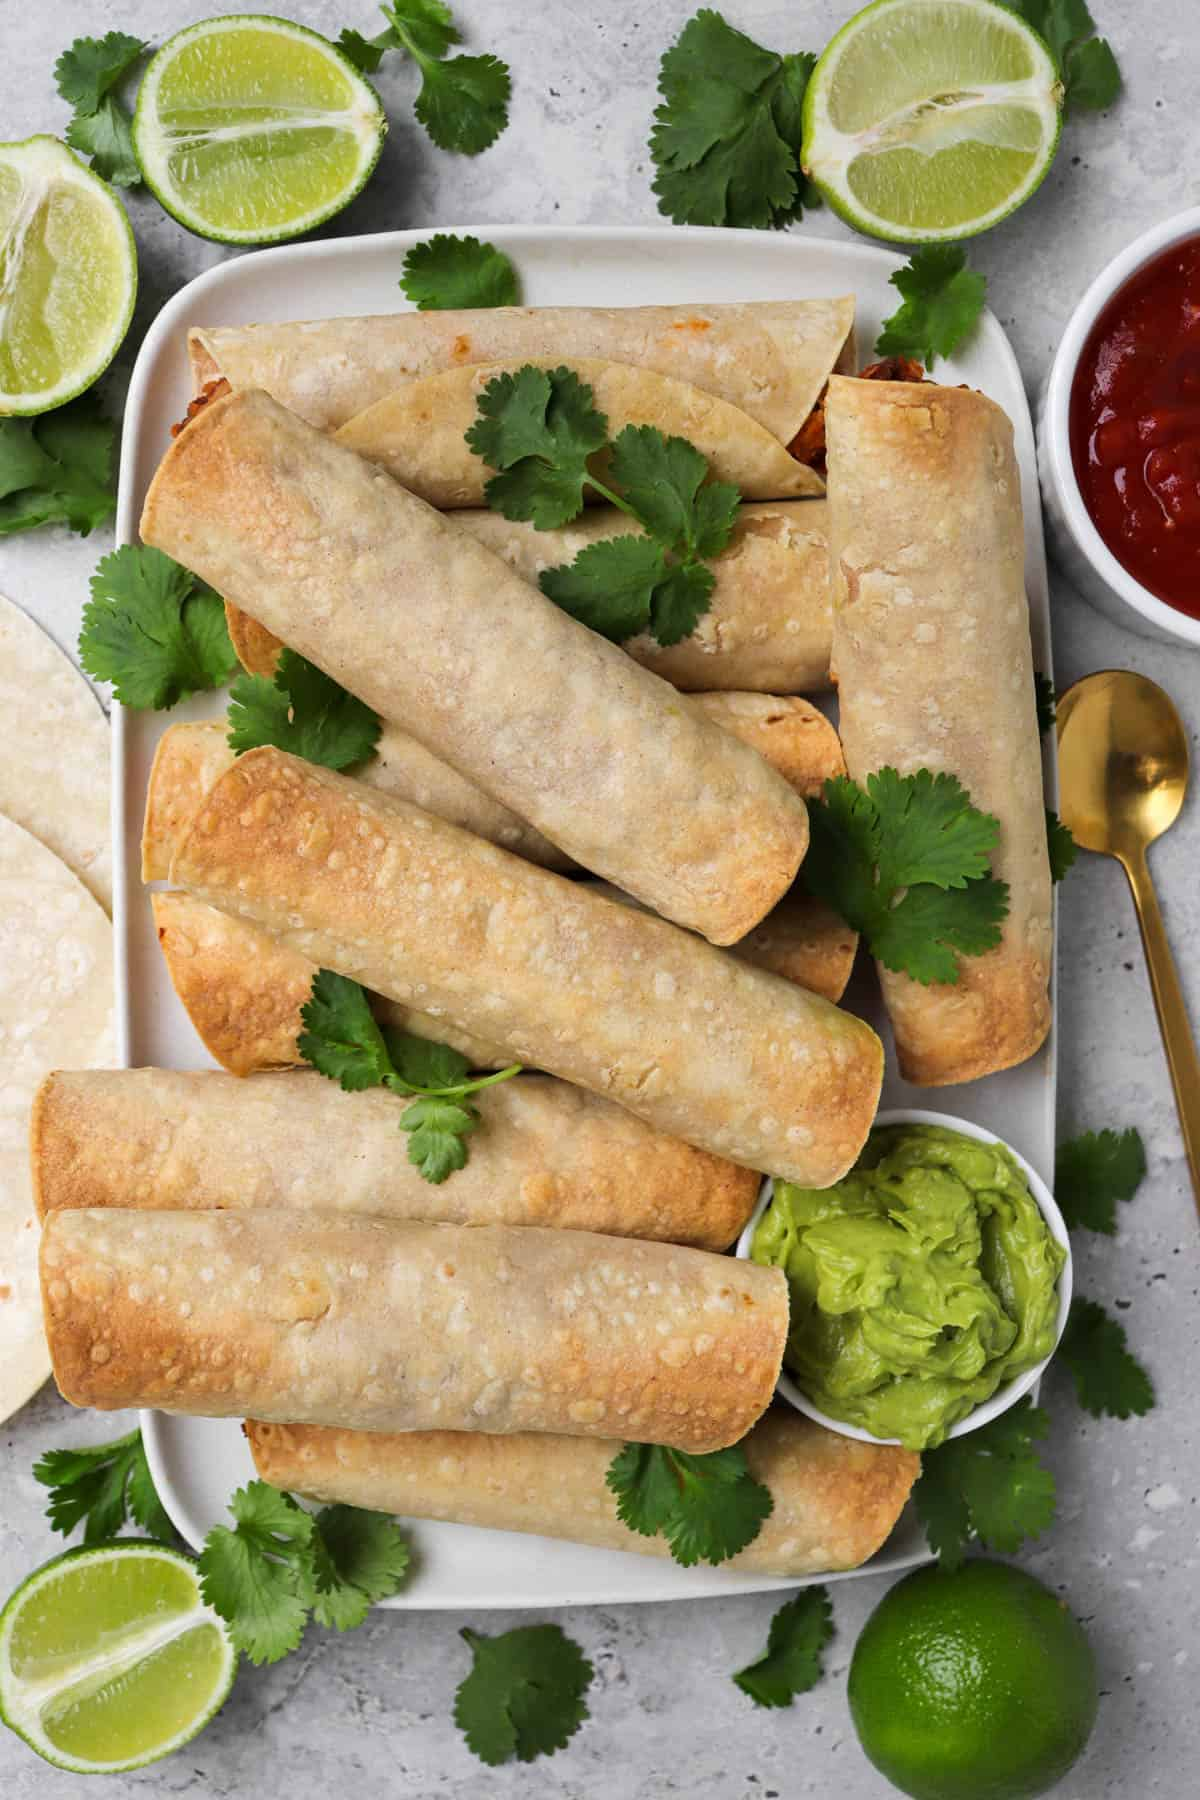 Taquitos on a platter garnished with coriander, side of guacamole, halved limes, gold spoon and salsa on the side.